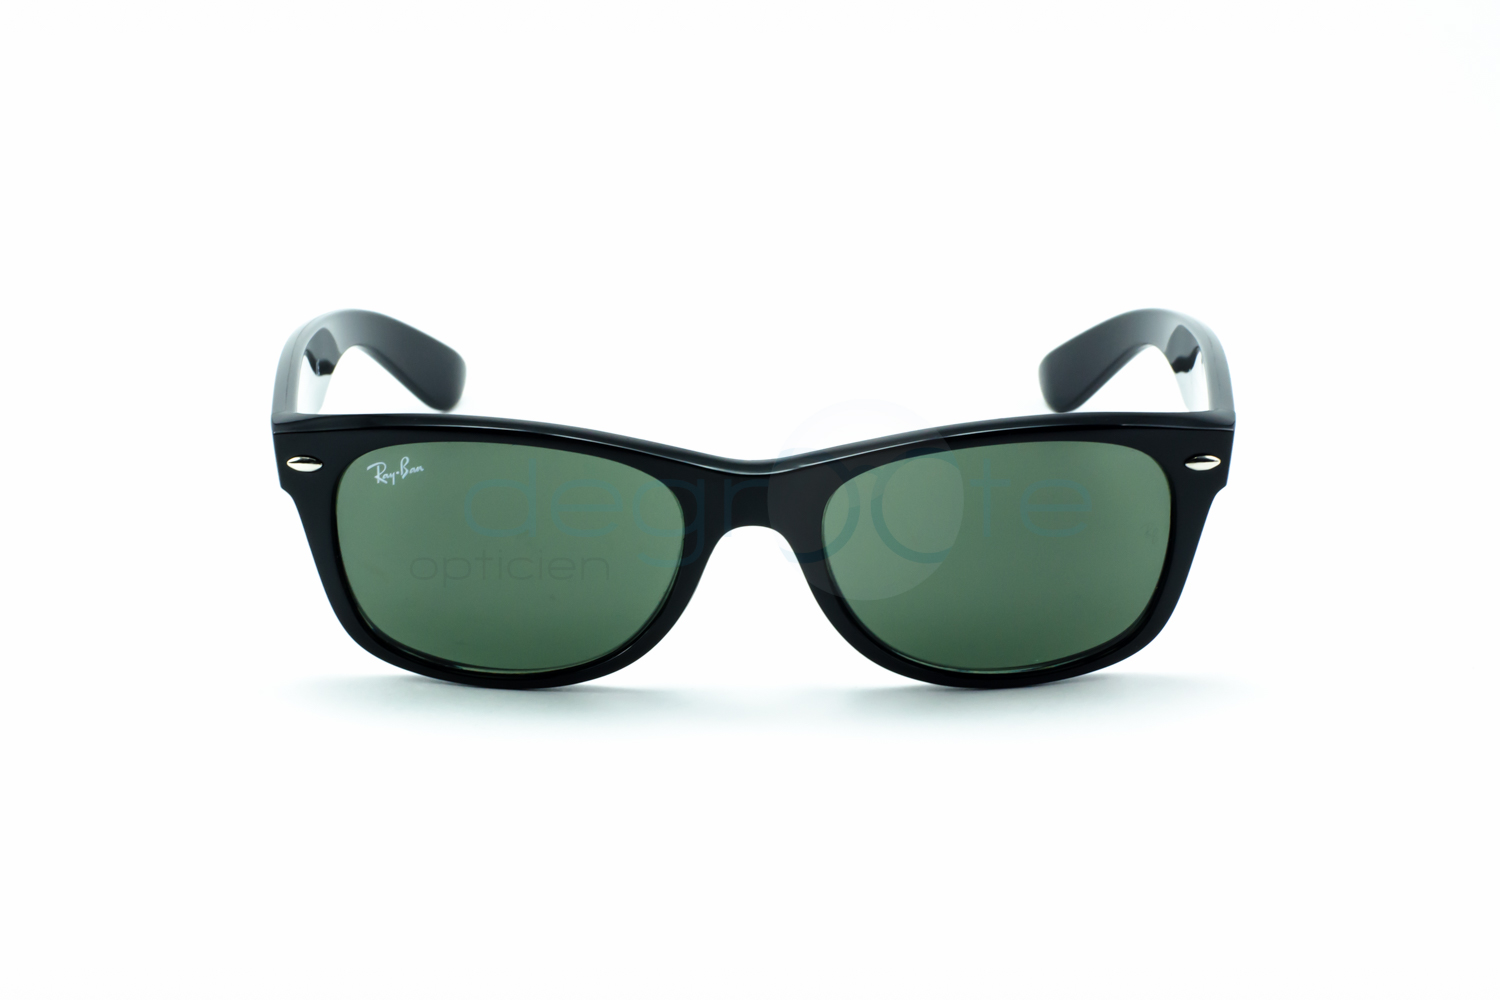 Ray-Ban Wayfarer sunglasses have been manufactured by Ray-Ban since , which in turn has belonged to the Italian Luxottica Group since Wayfarers enjoyed early popularity in the s and s, returning to popularity again after a product .